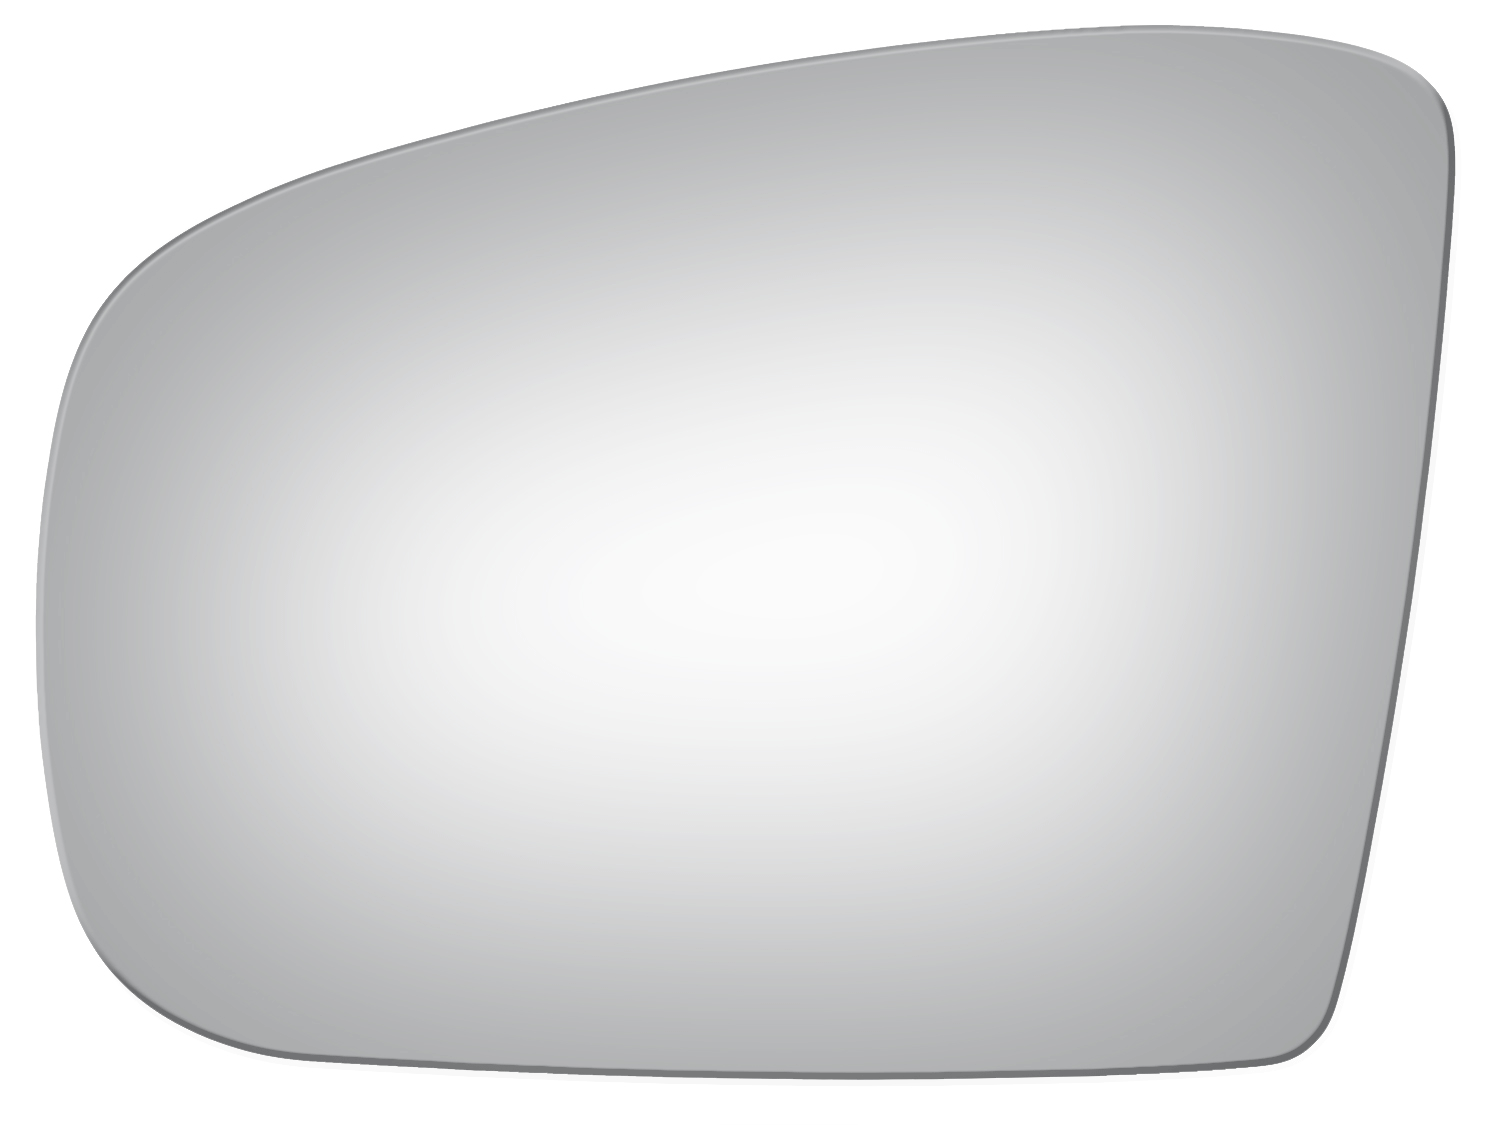 Mercedes benz ml320 2002 driver side mirror glass for Driver side mirror replacement mercedes benz